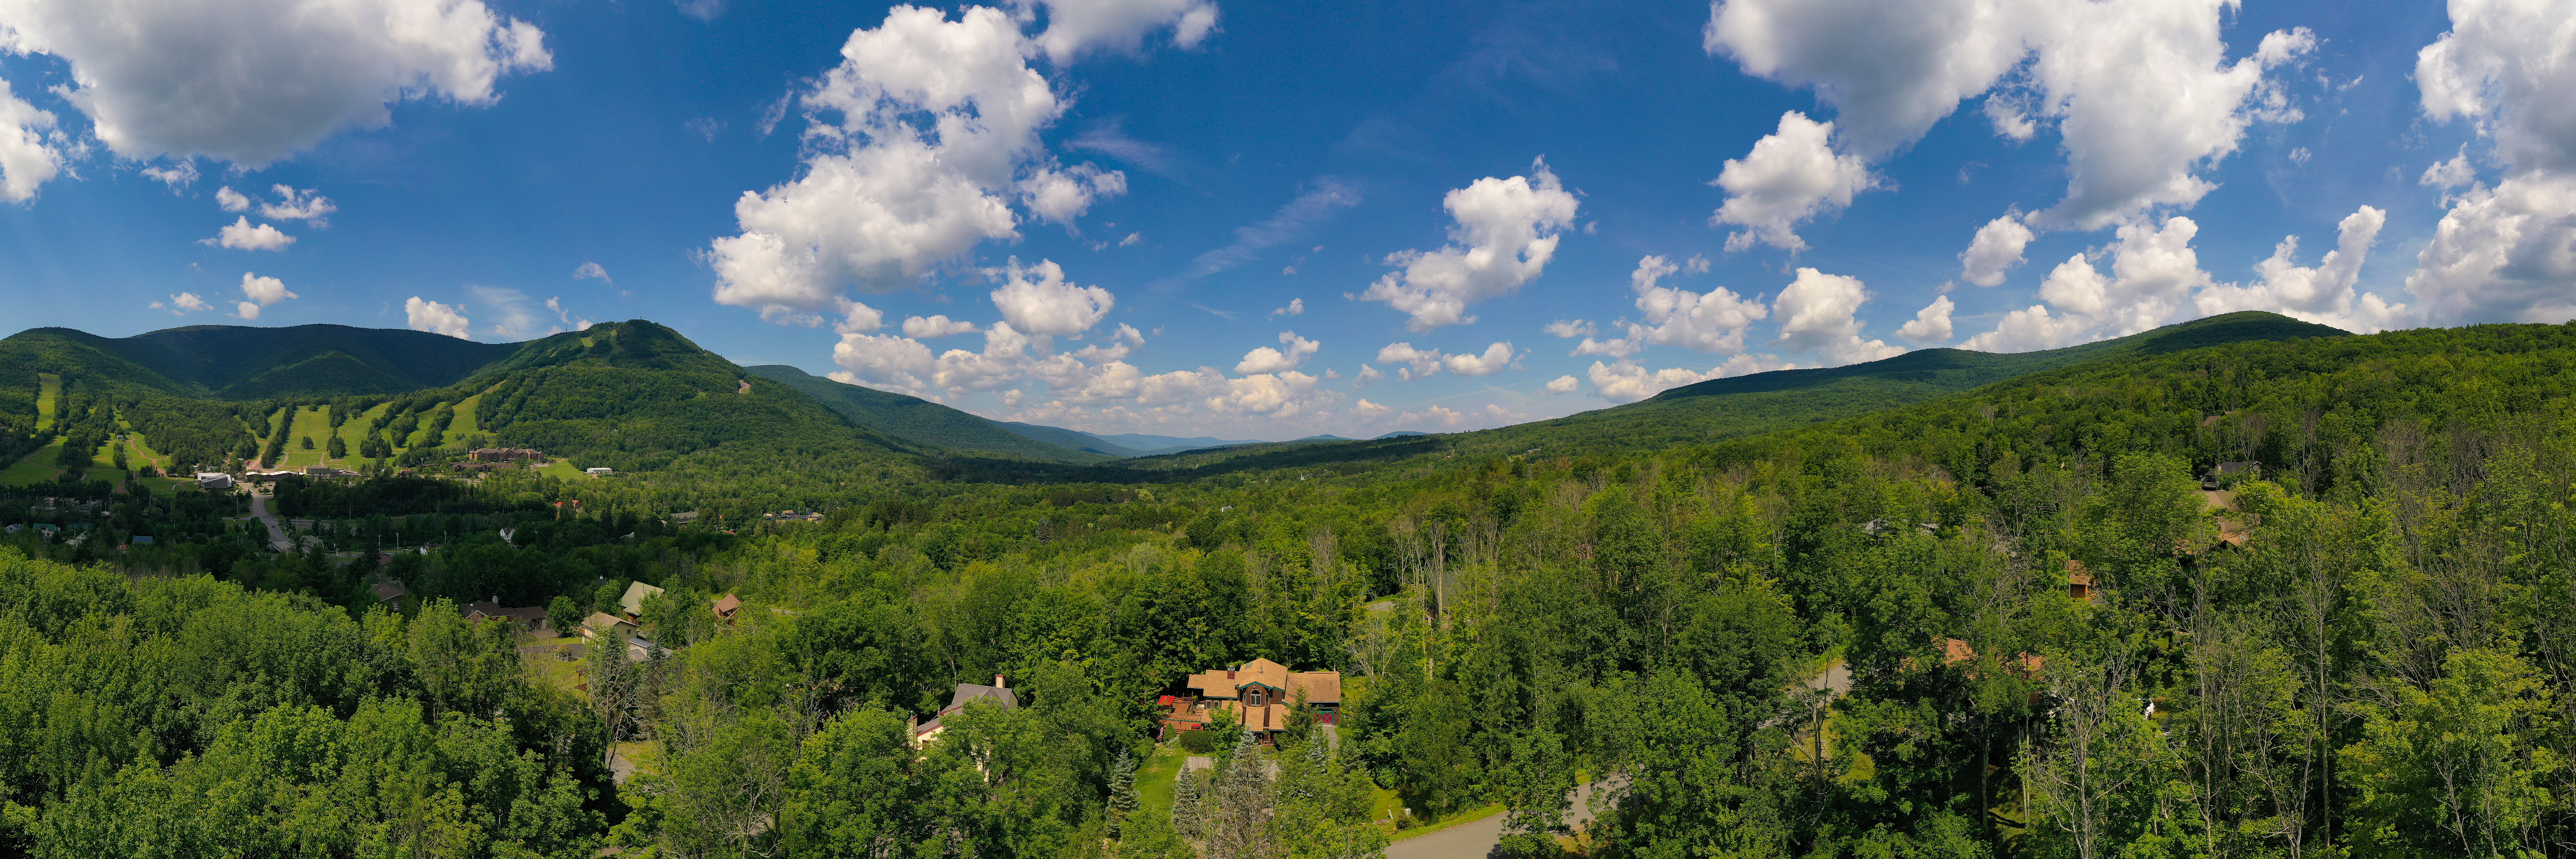 Beautiful Ski Mountains in Catskills, NY